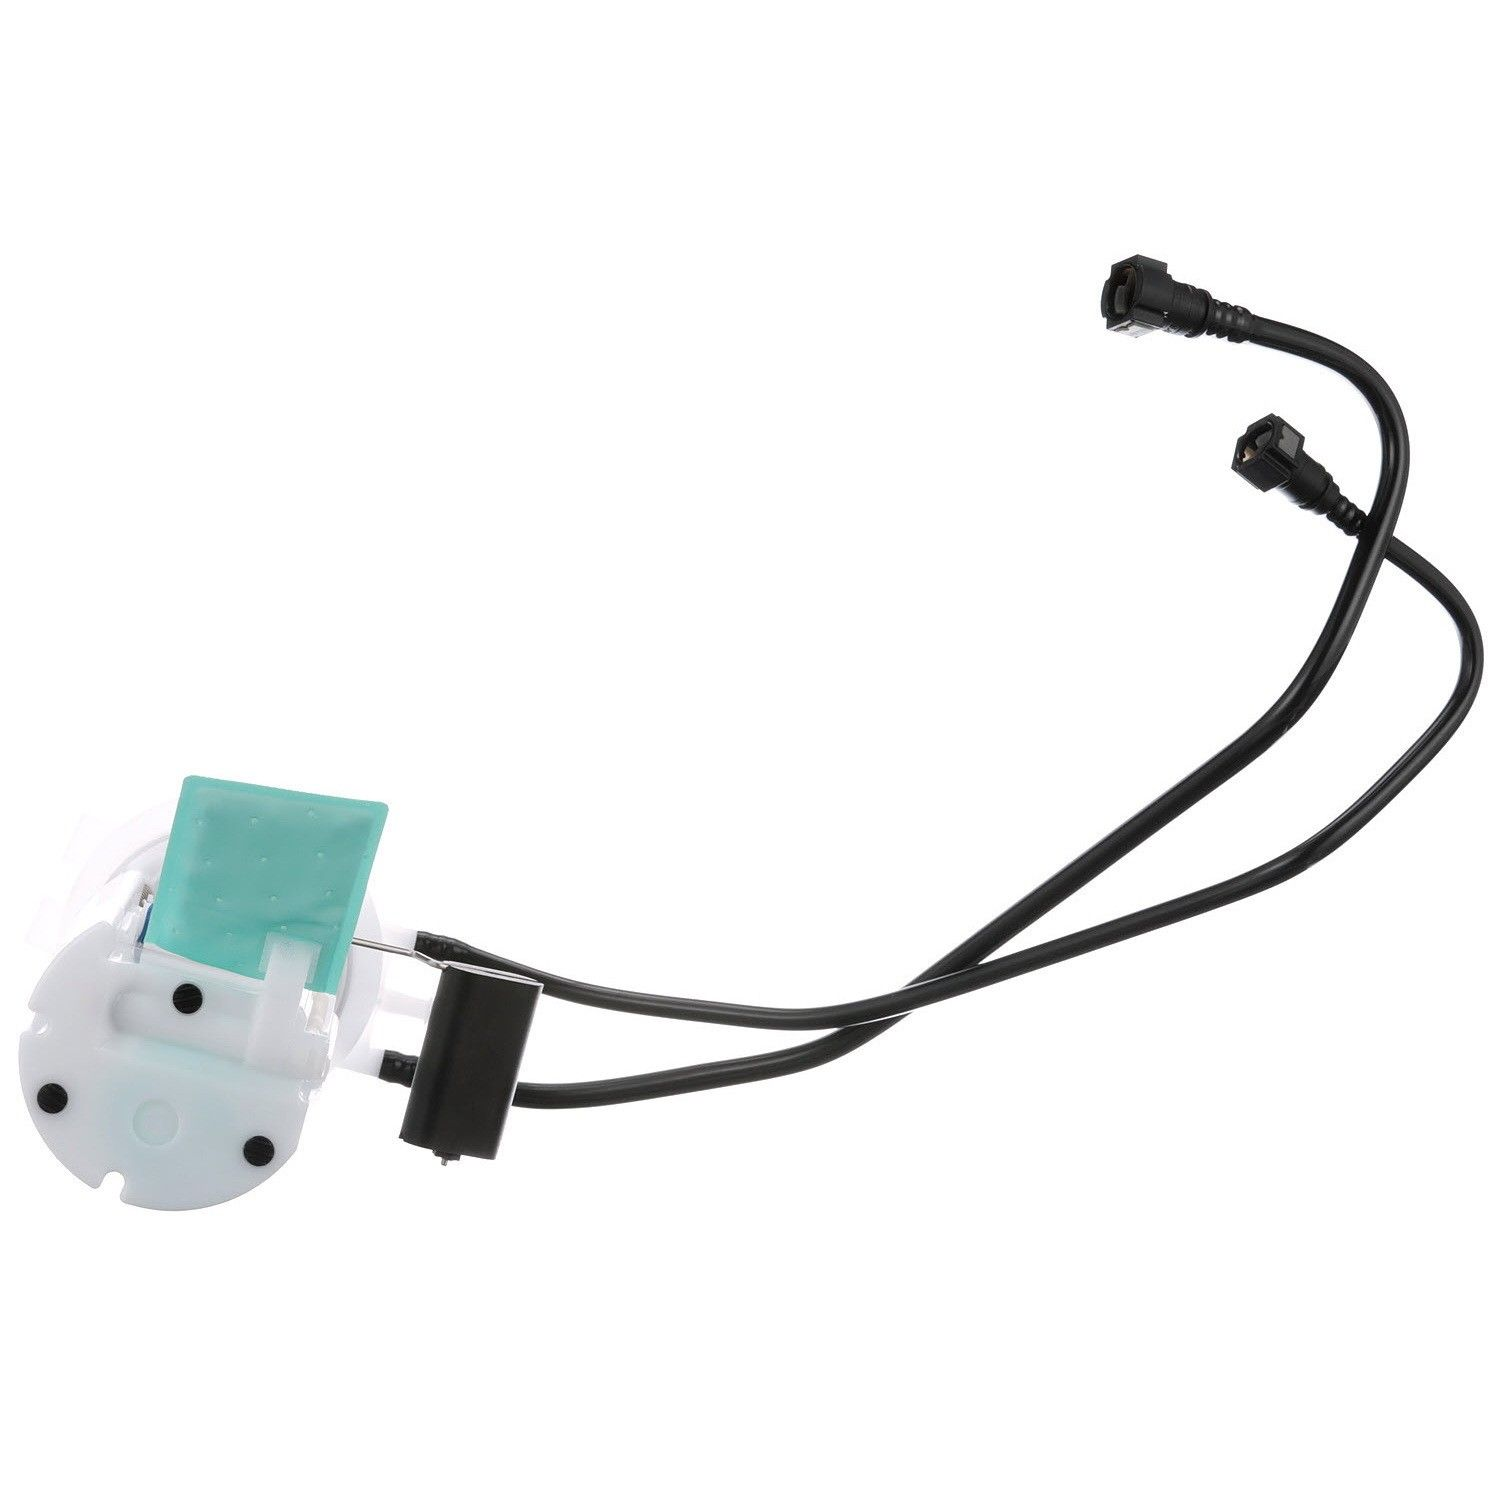 2000 Chevrolet Cavalier Fuel Pump Module Assembly 4 Cyl 2.2L (Carter  P74831M) Features Turbine pump, CleanScreen Technology and Wiring Harness  With Plastic ...